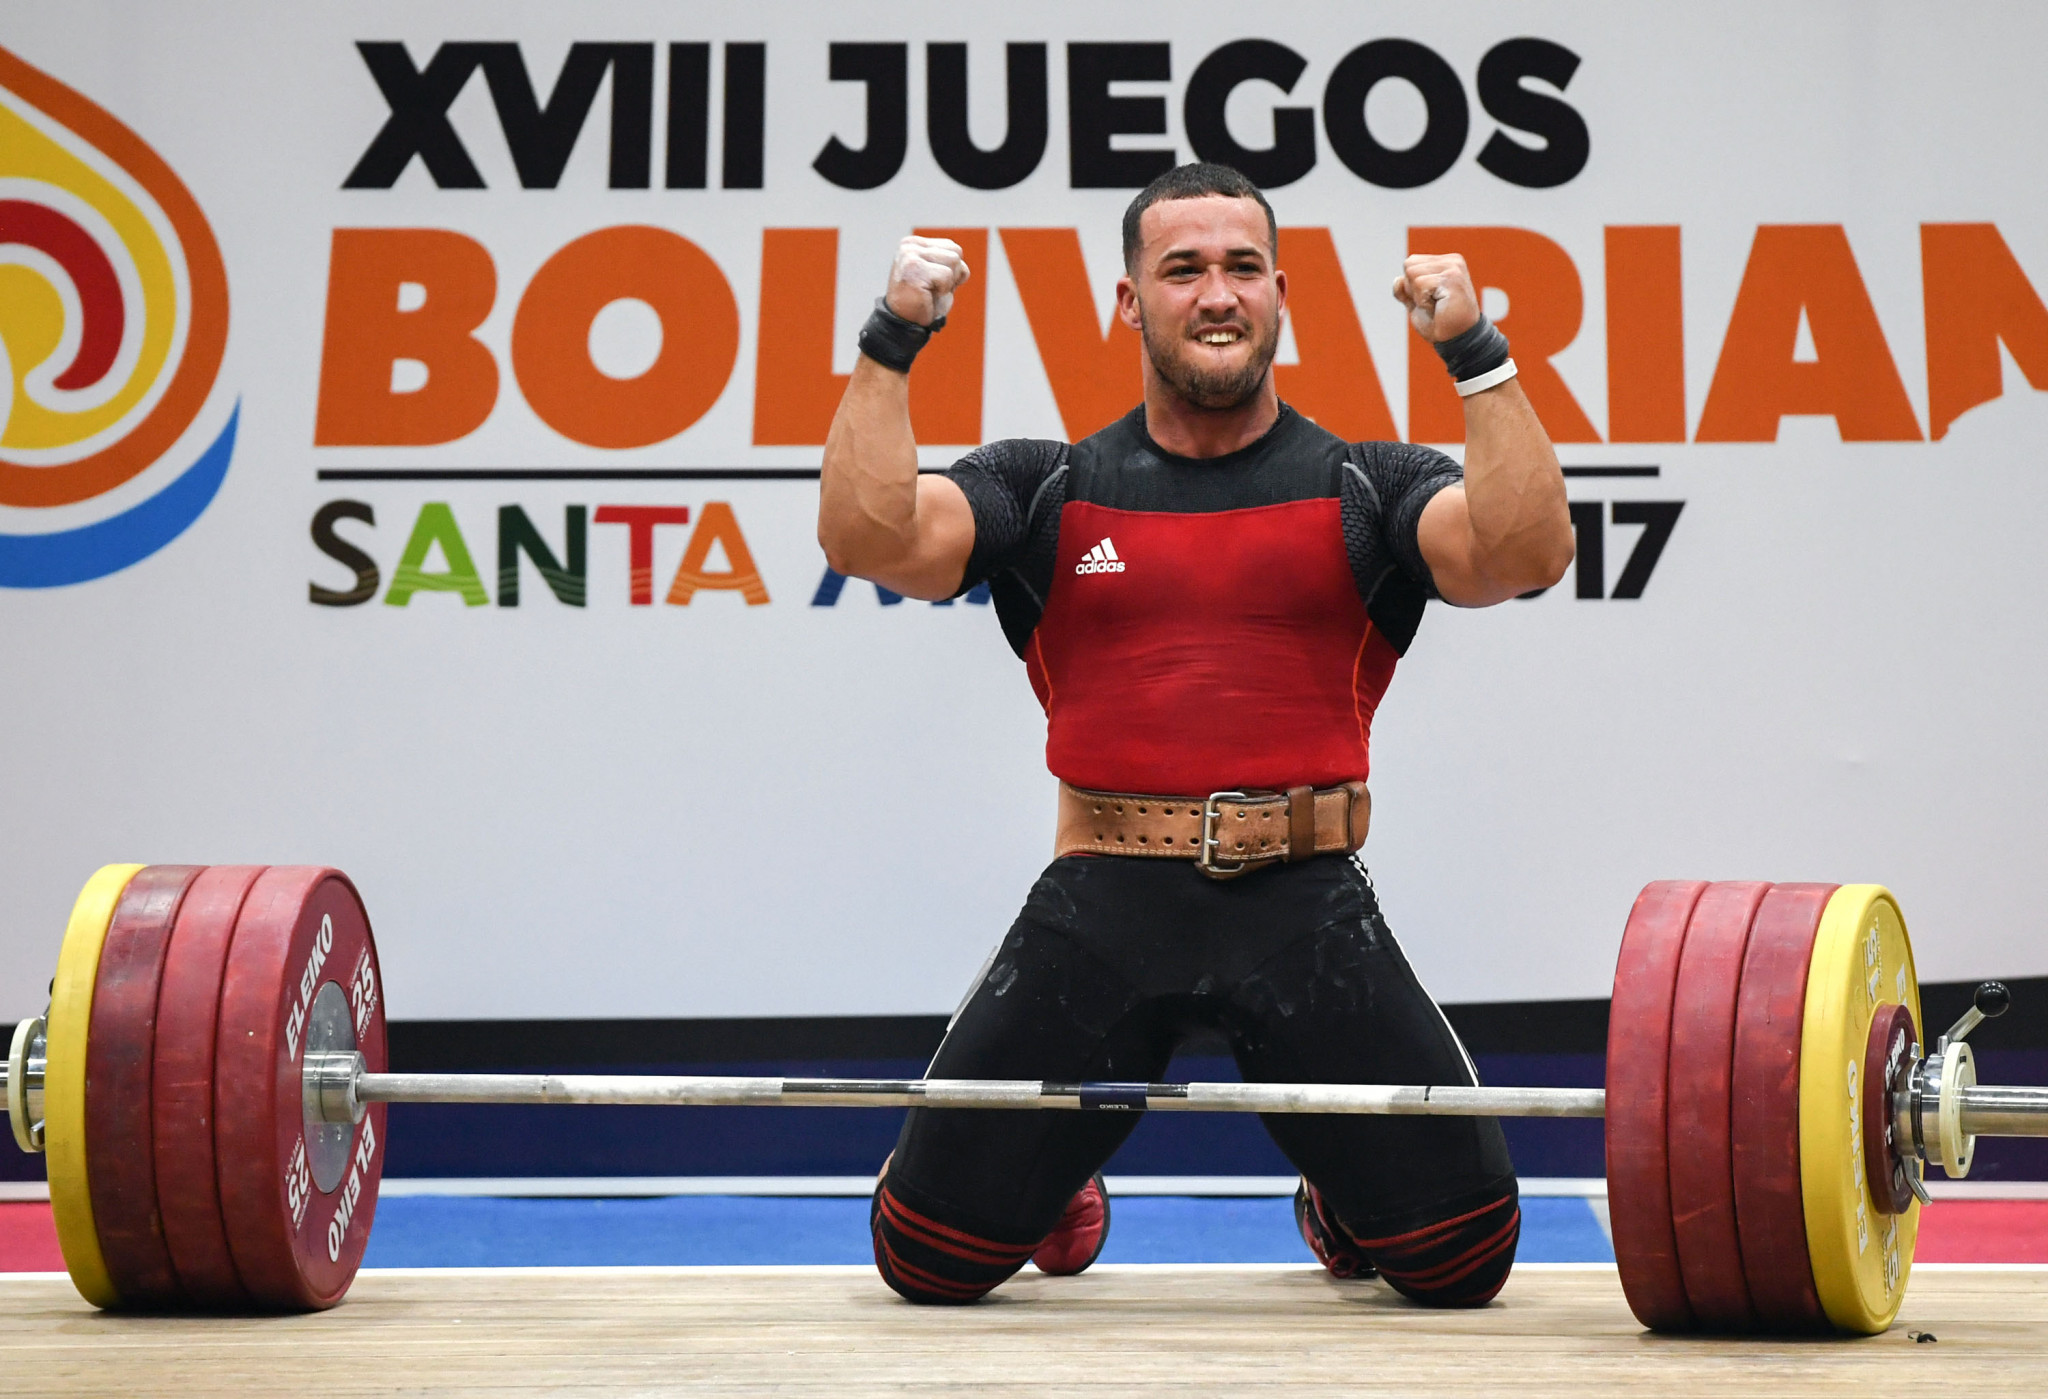 South American weightlifters allowed by ITA to compete at Tokyo 2020